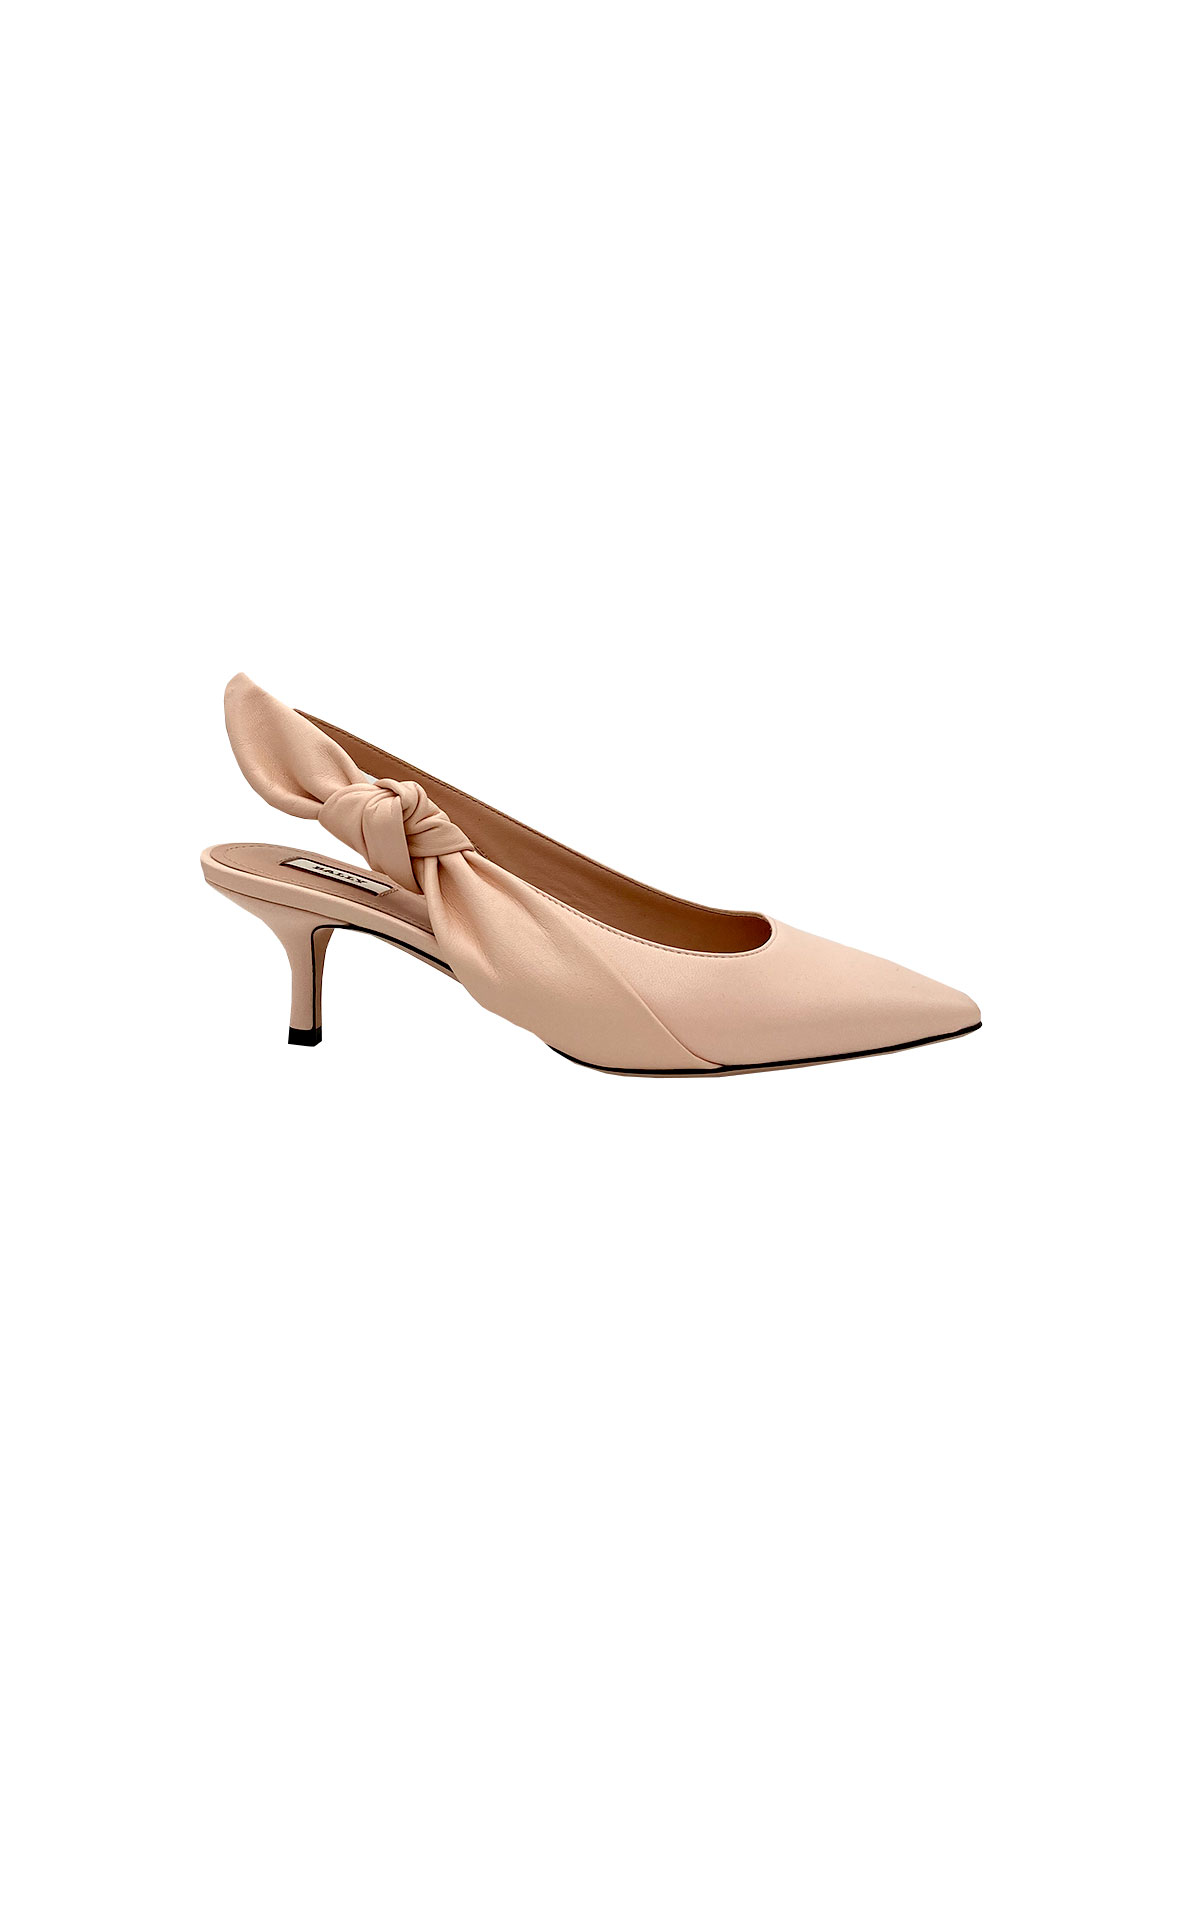 Nude heeled shoe Bally